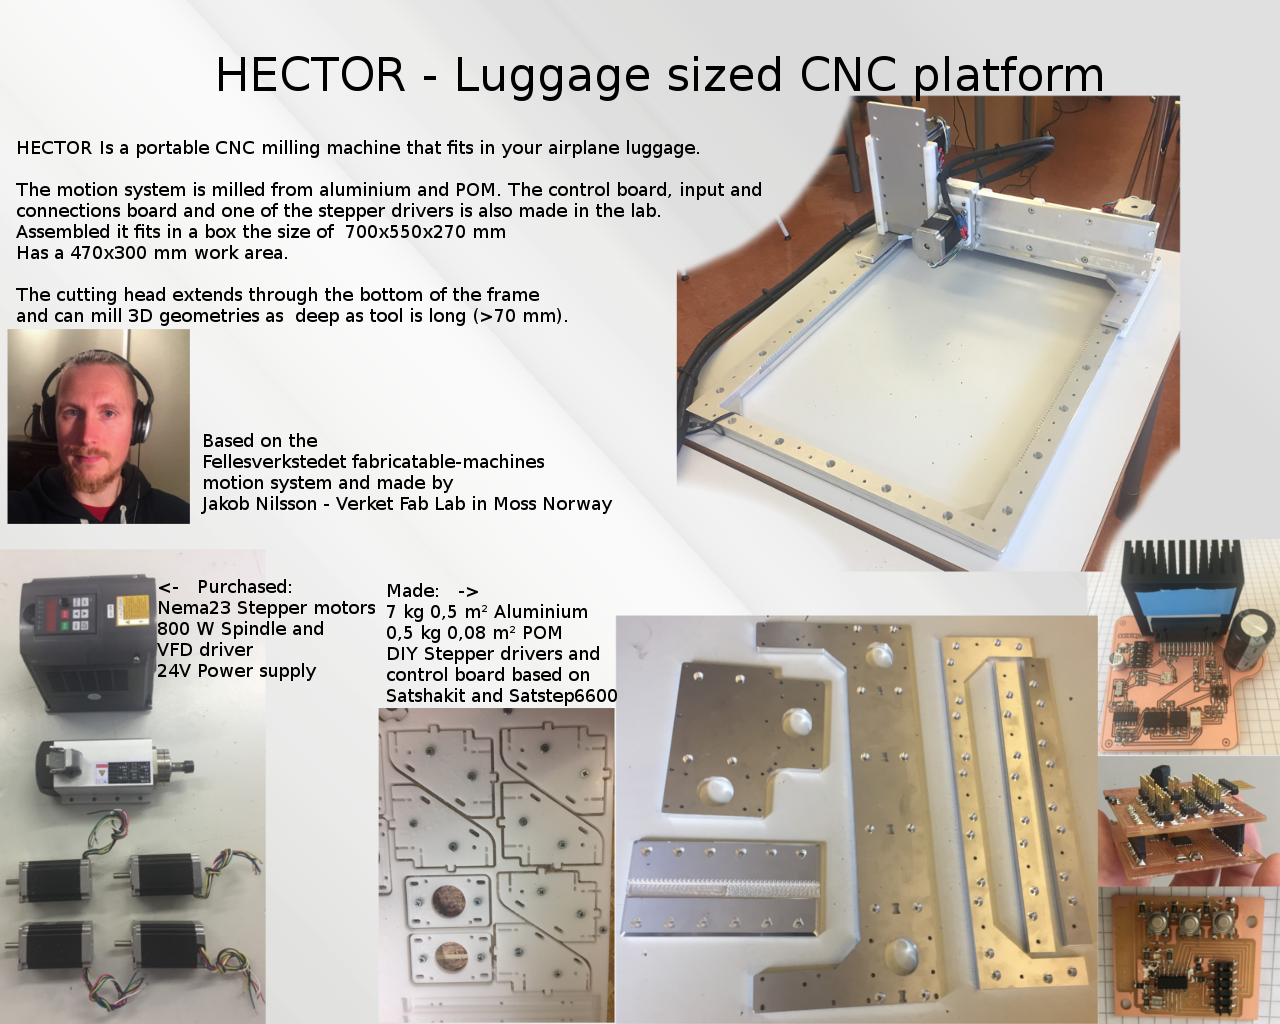 HECTOR CNC machine, by Jakob Nielsen